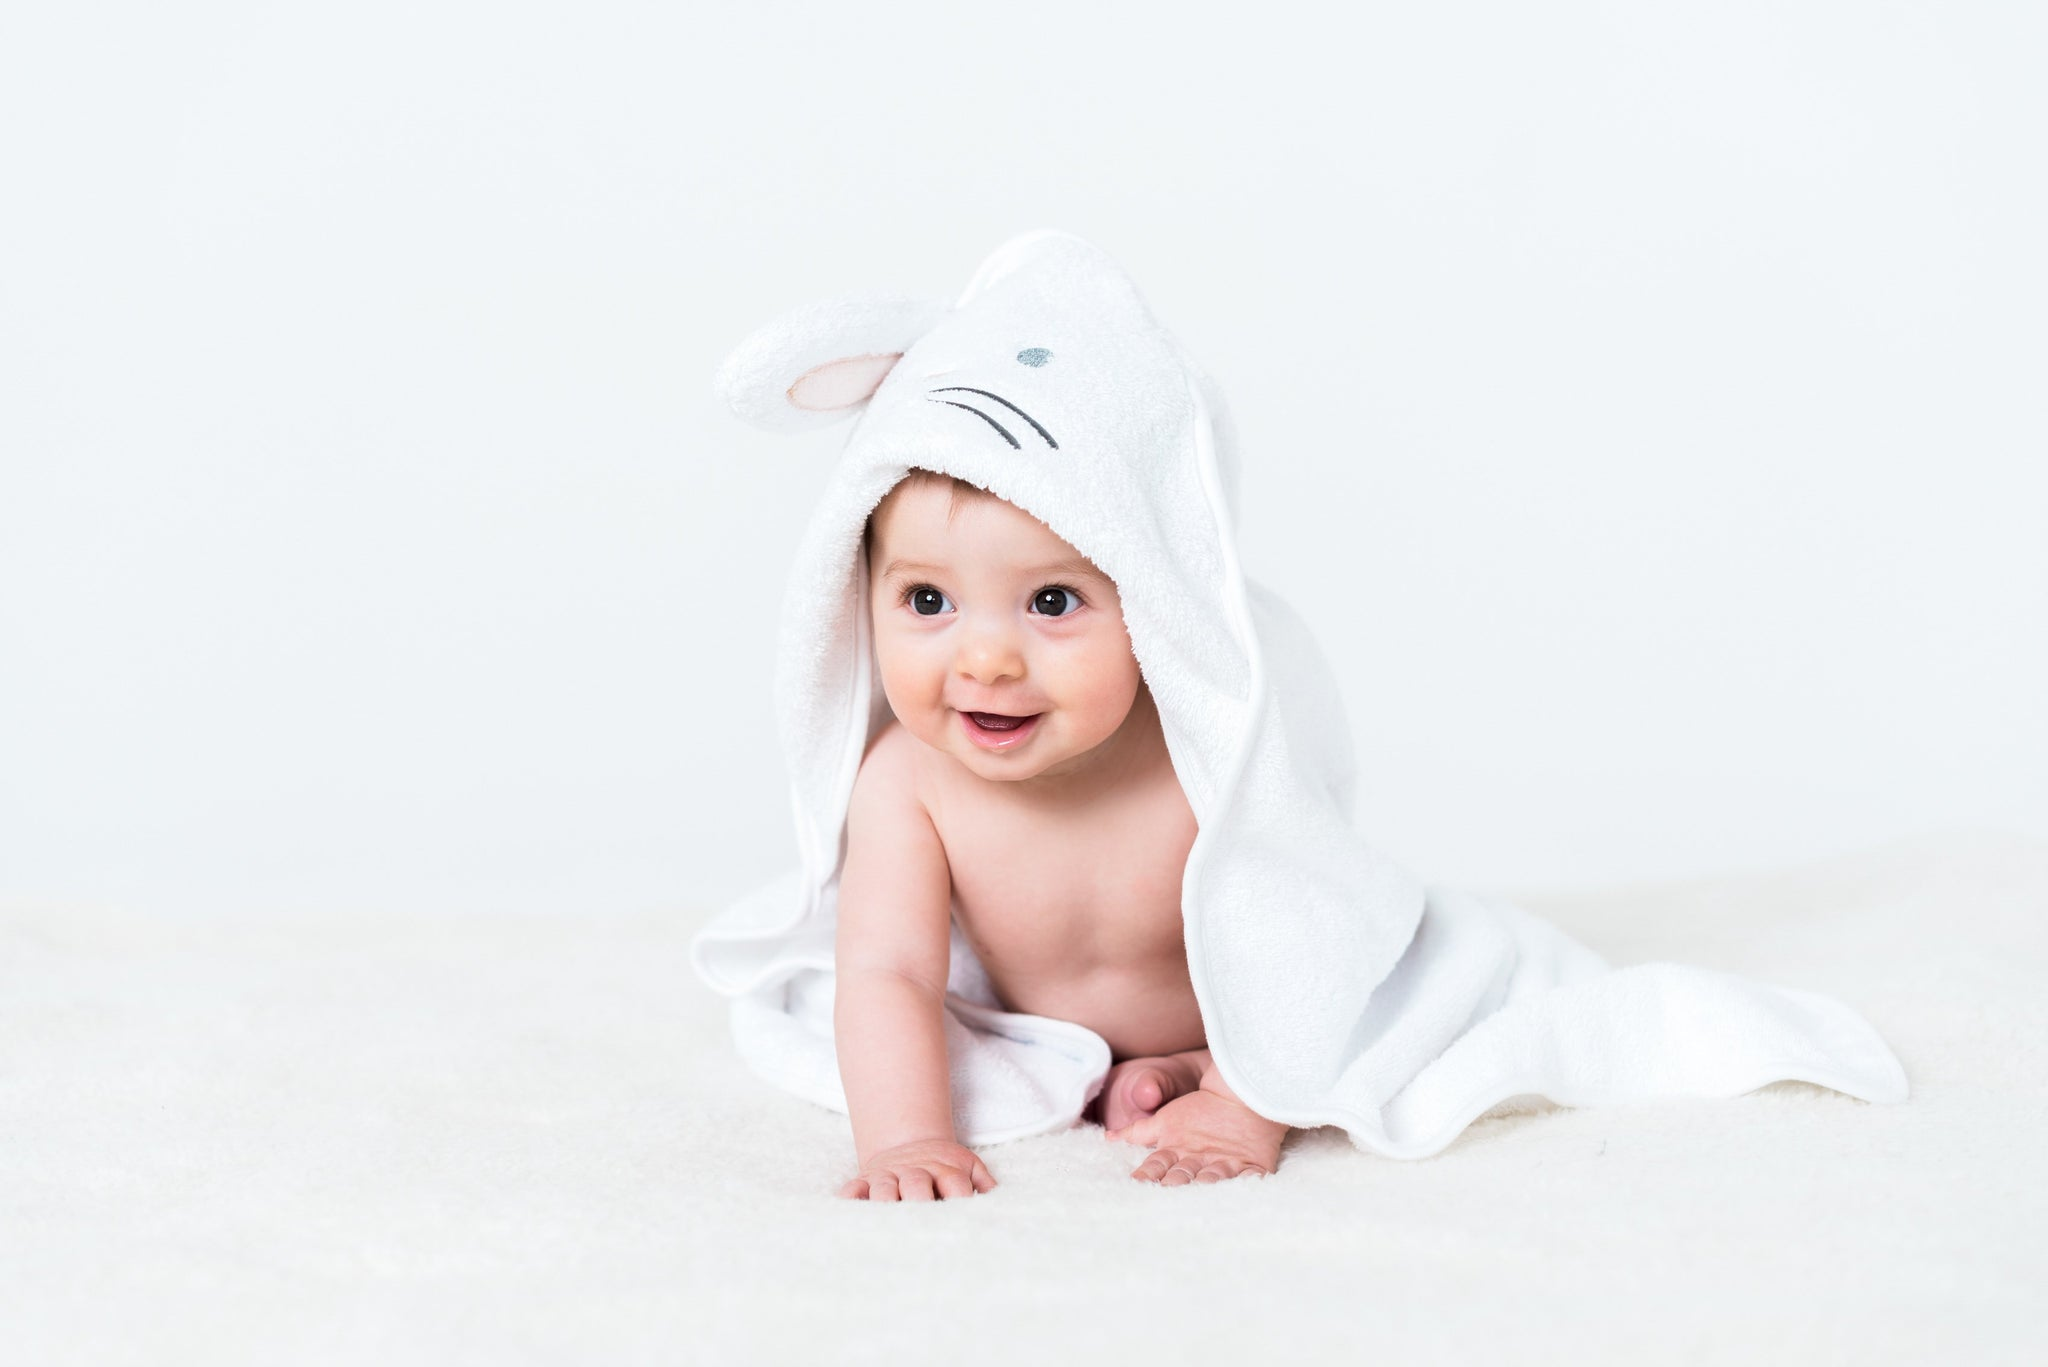 Towel - Bunny Hooded Towel with 3D Ears | Baby Accessories